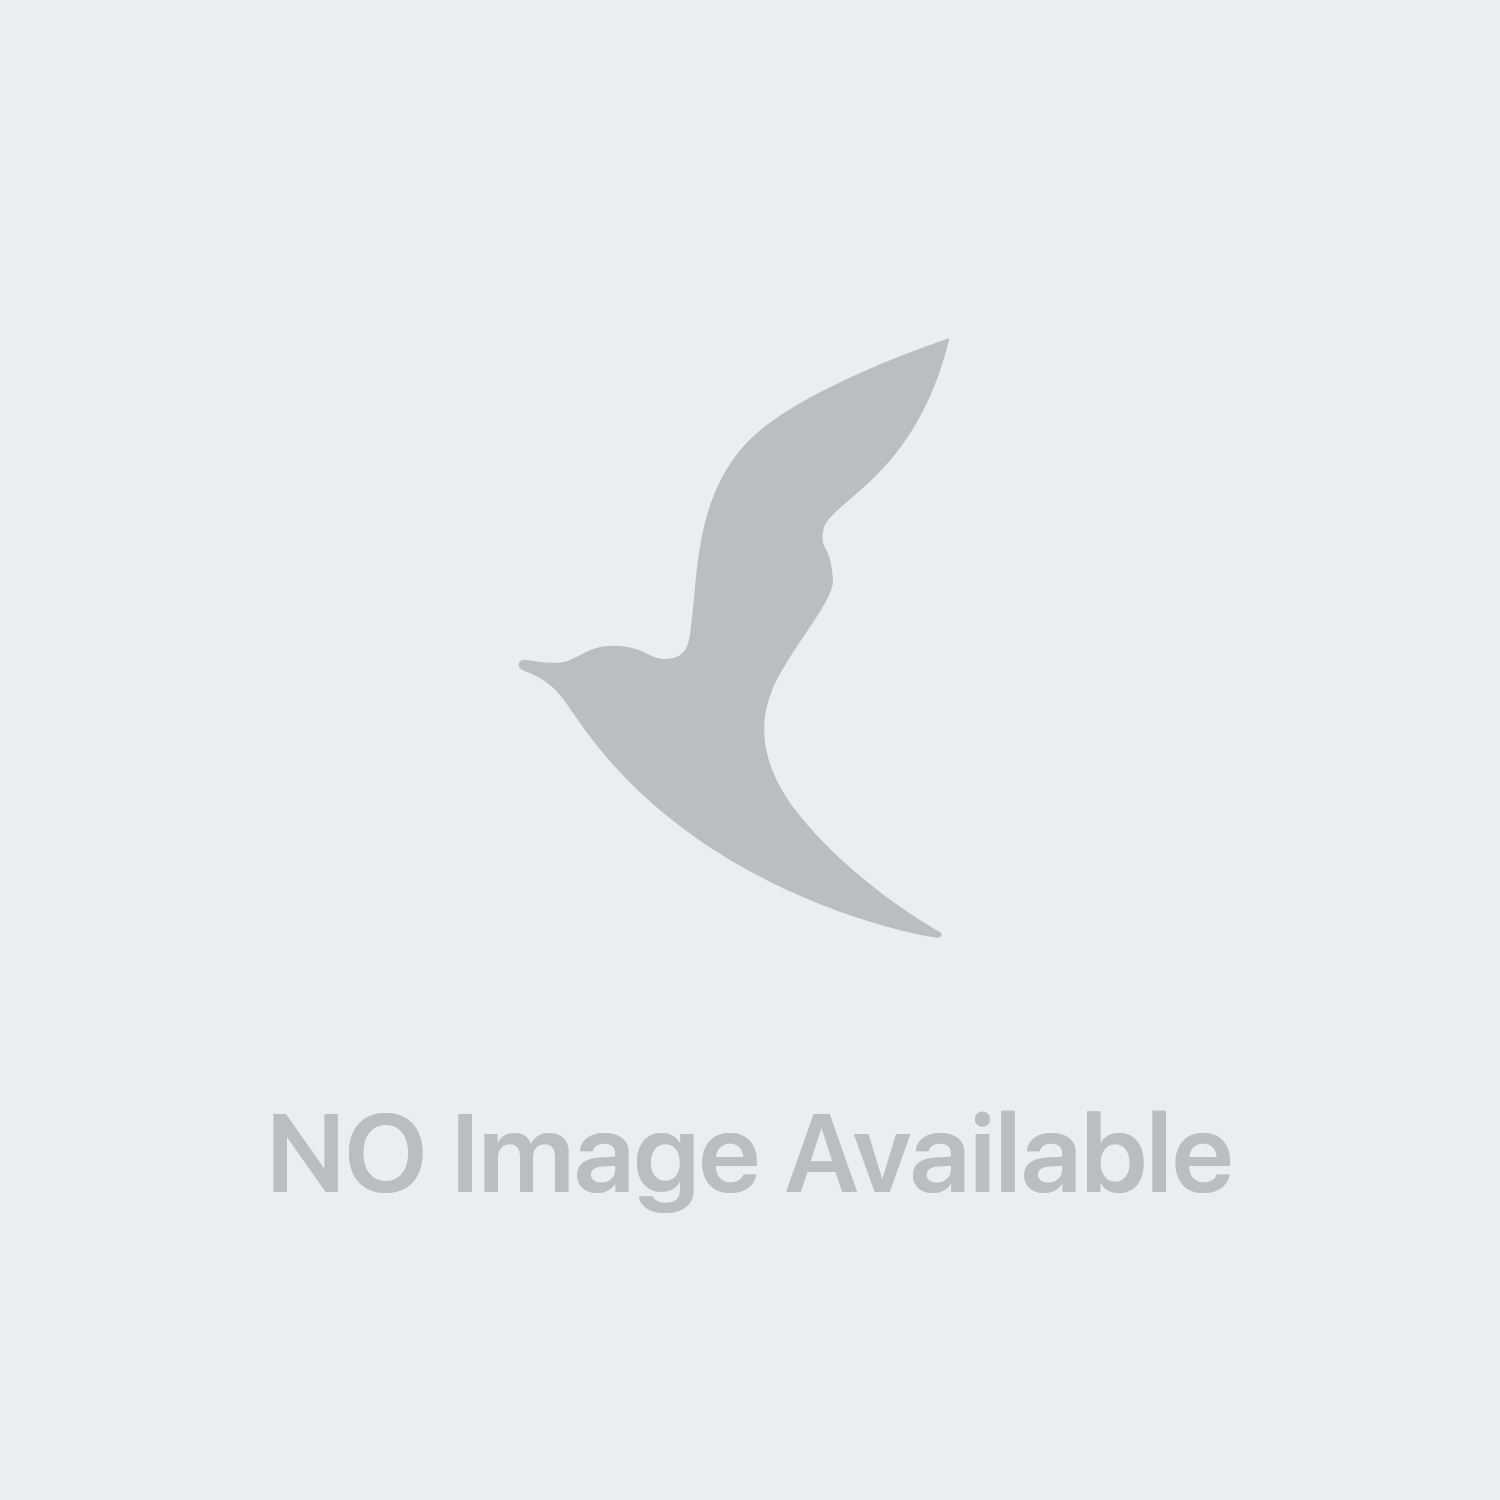 Uriage Isoliss Crema Anti Rughe Pelli Secche 40 Ml